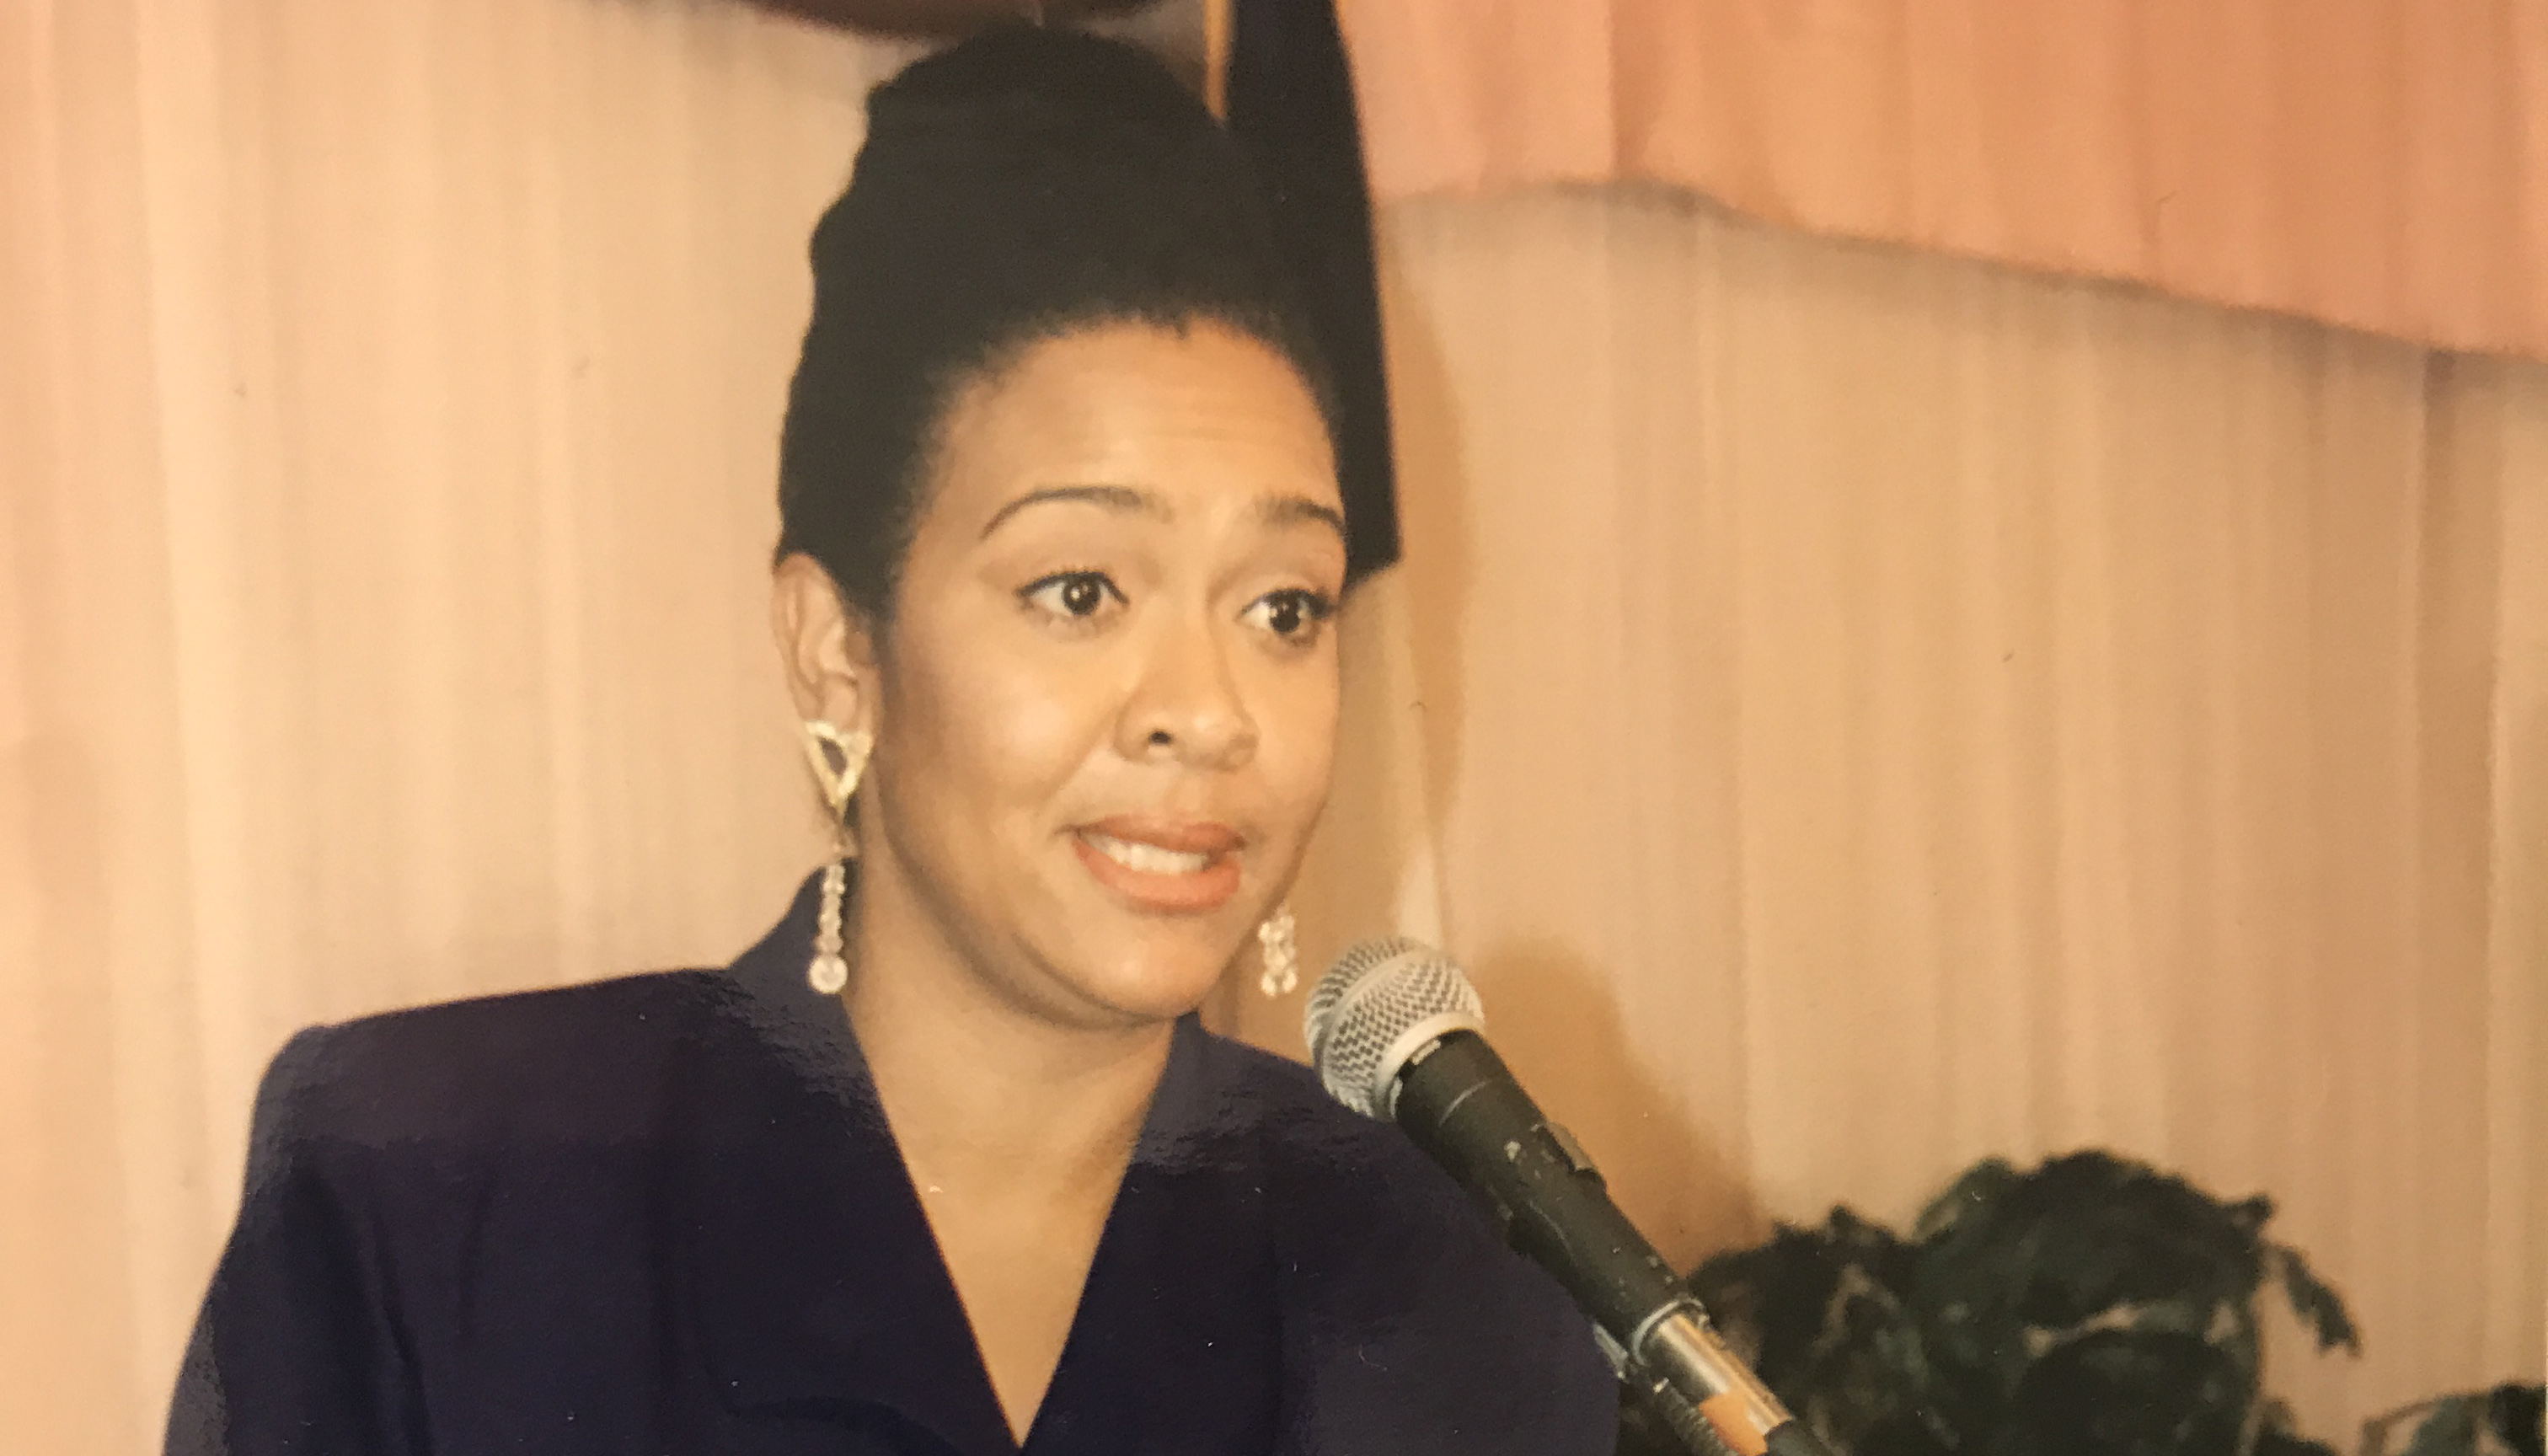 Former First Lady of the NAACP Martha Rivera Chavis dies at 53.